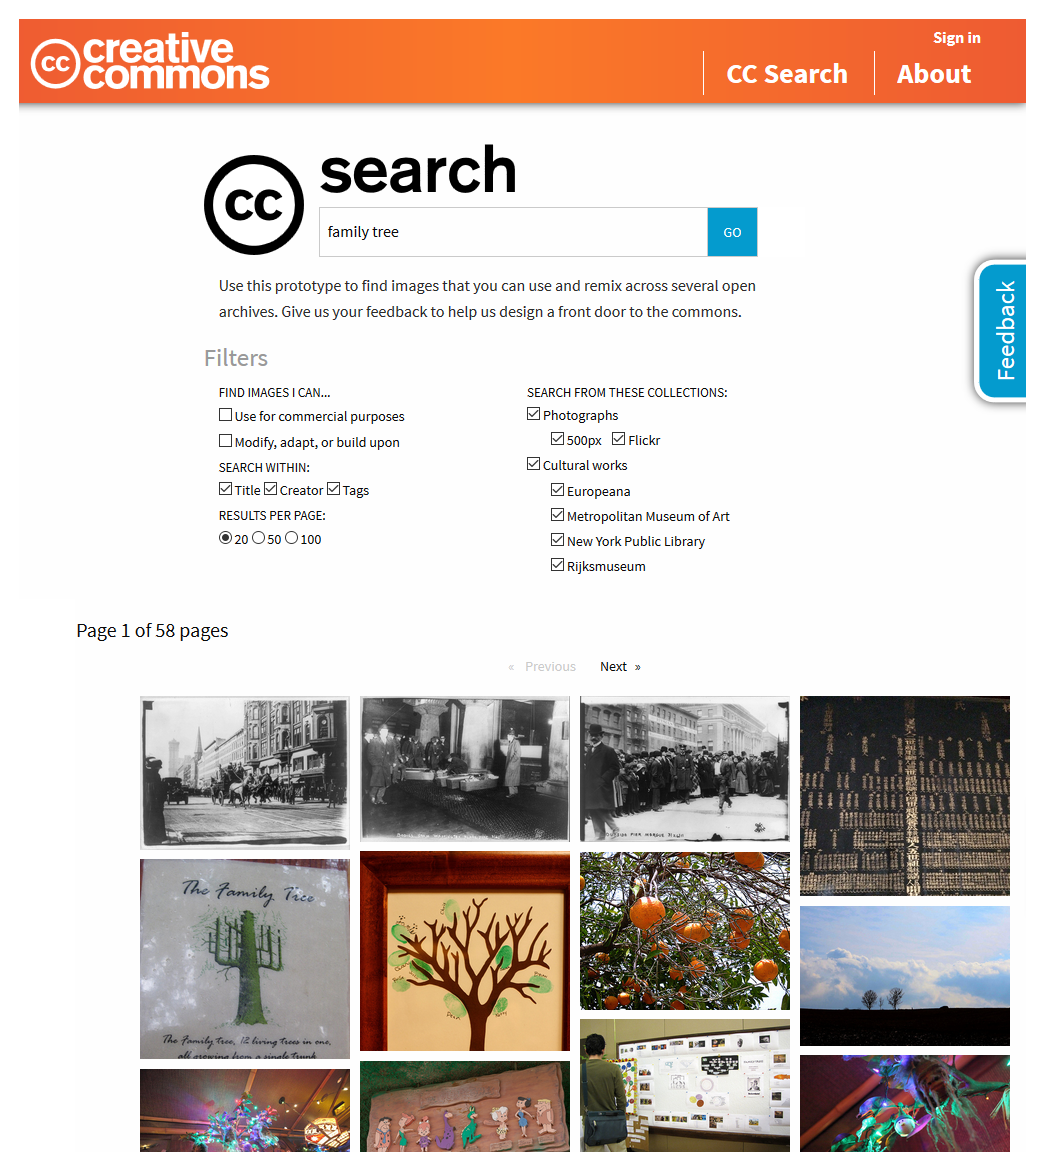 C search creative commons